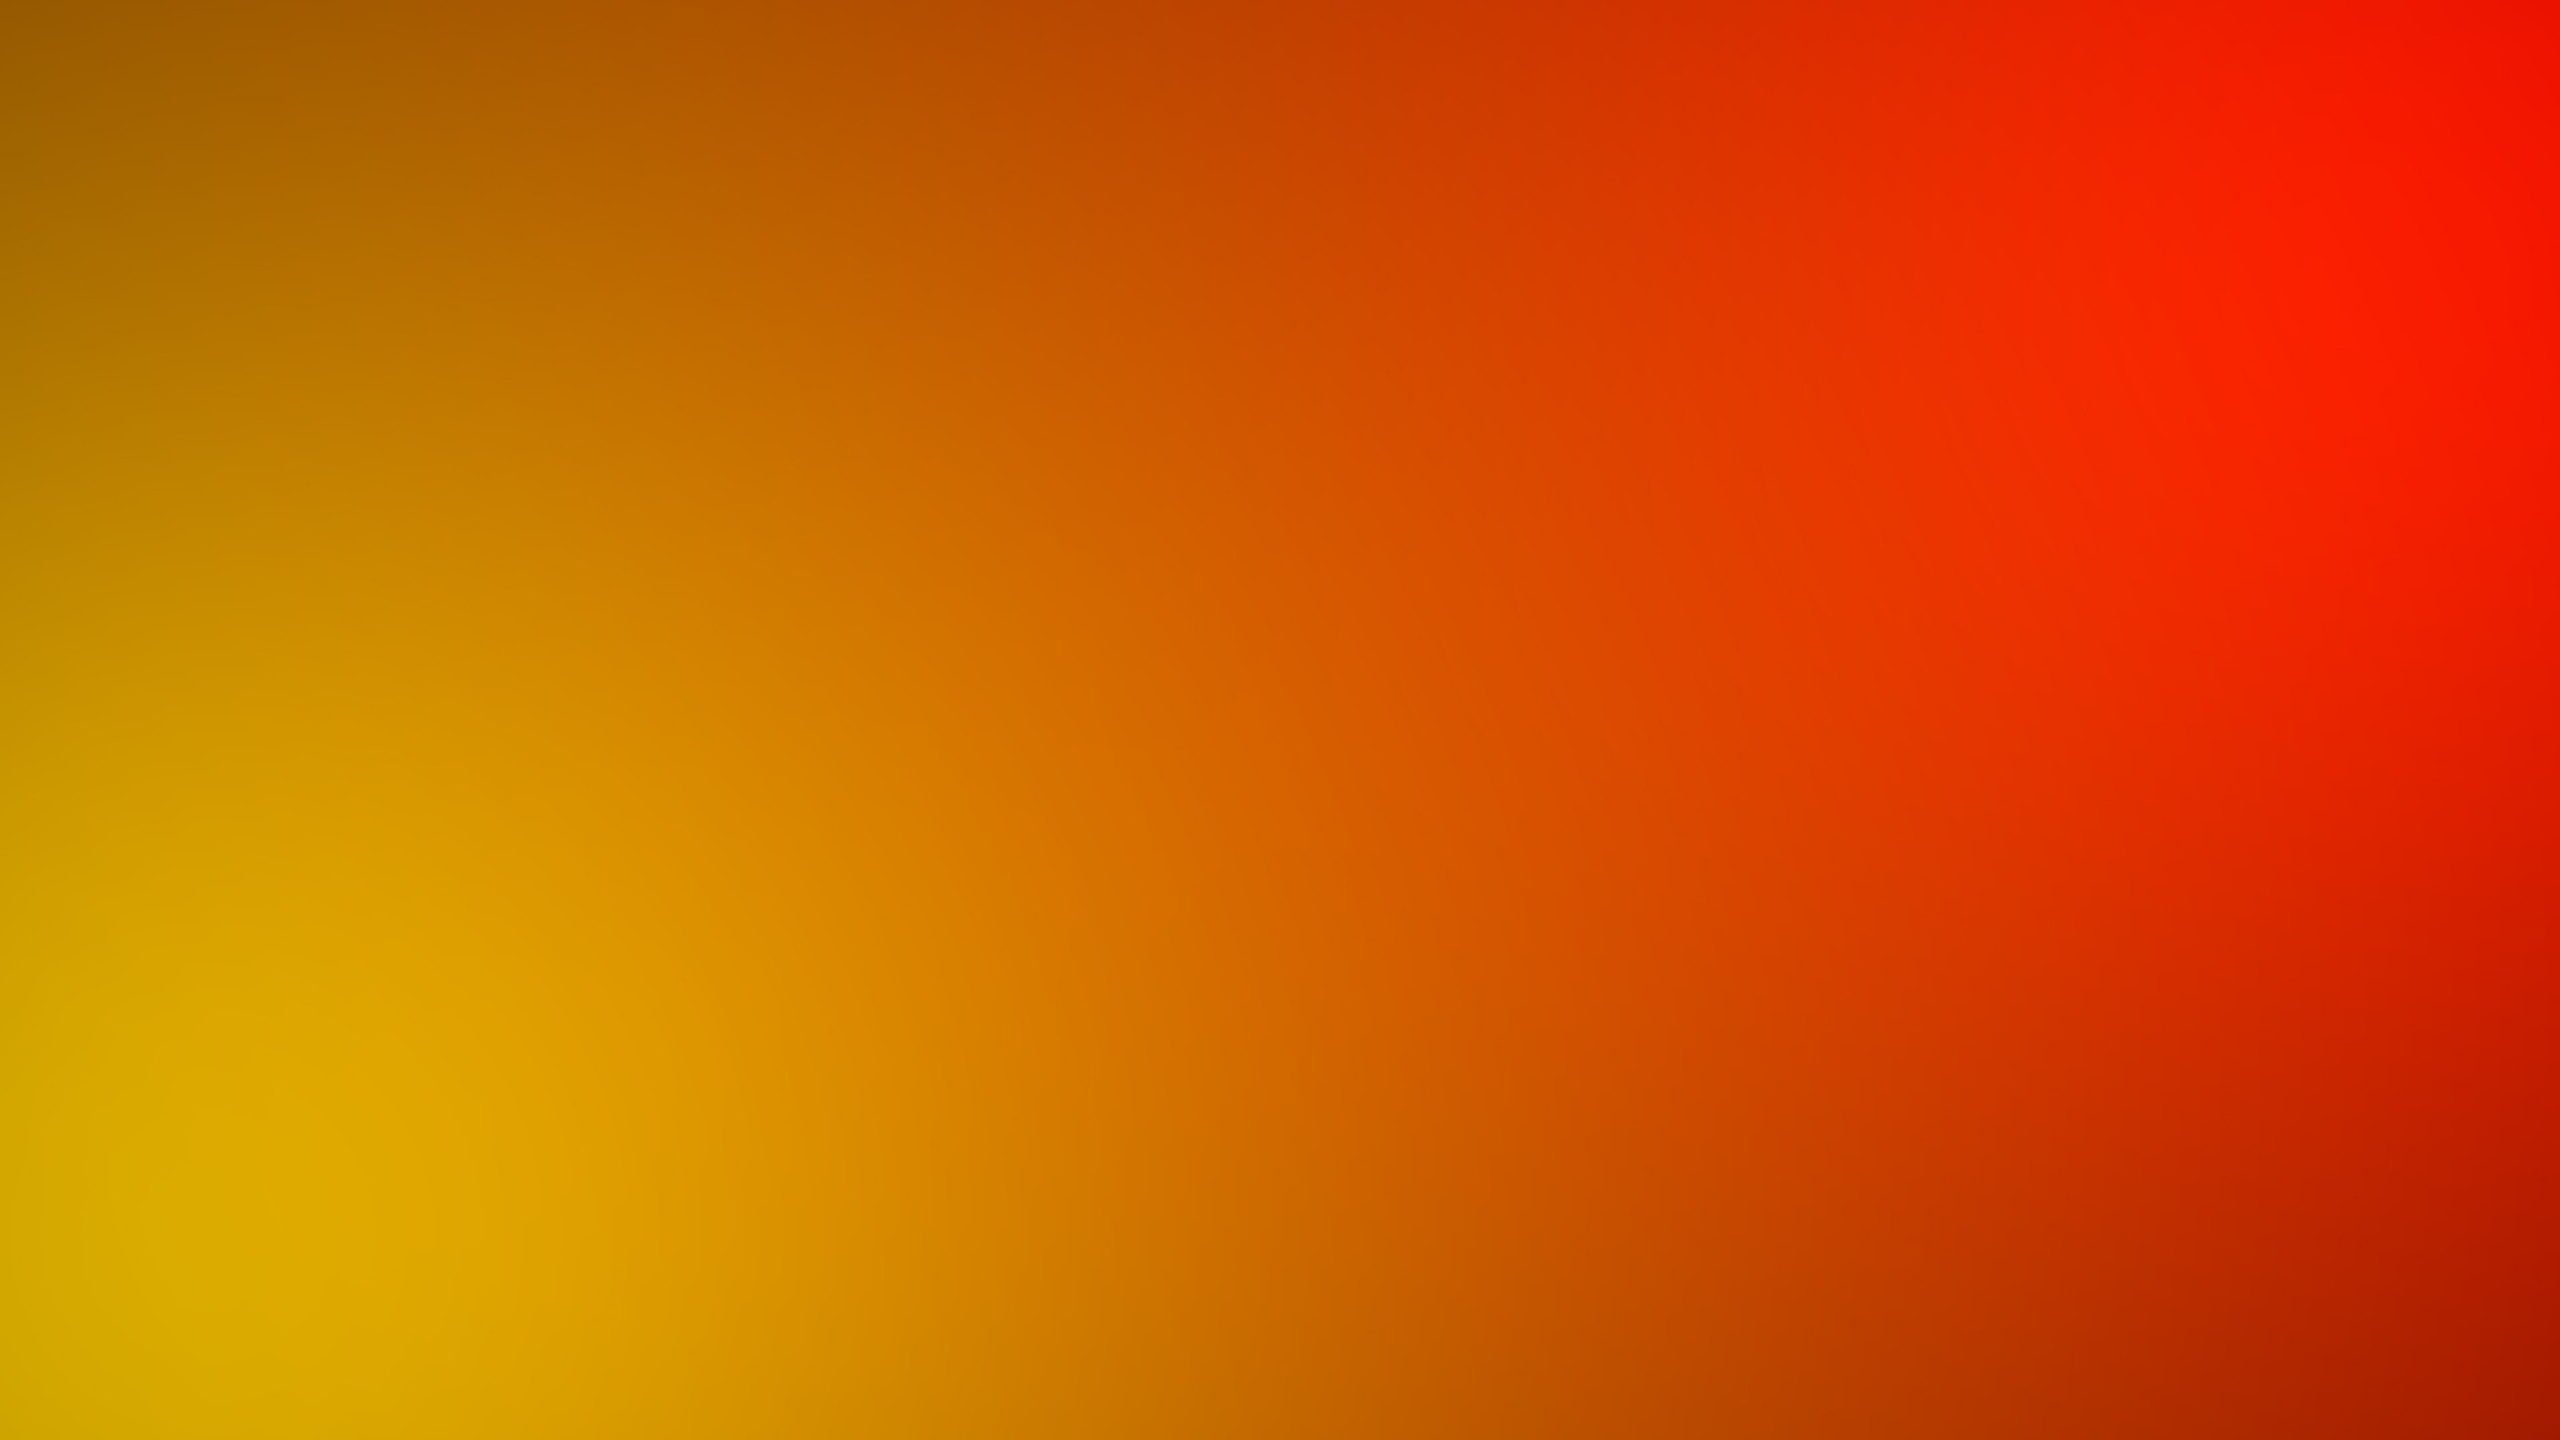 Download Orange Color HD Wallpapers Gallery